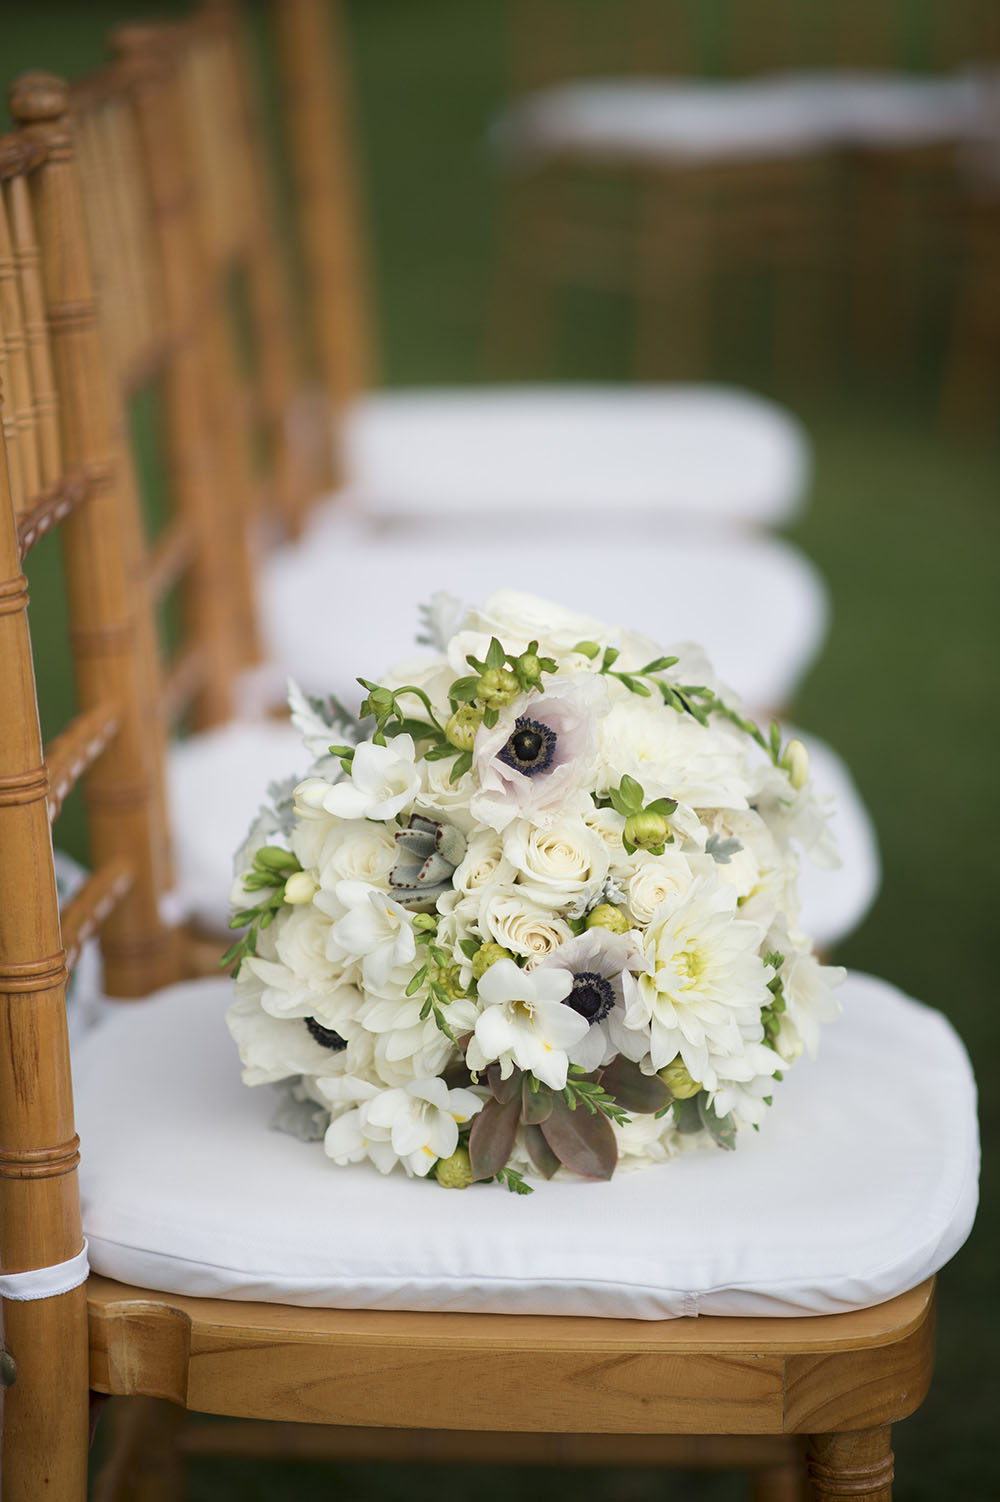 White bridal bouquet by Bliss Wedding Design - photo by Trish Barker Photography